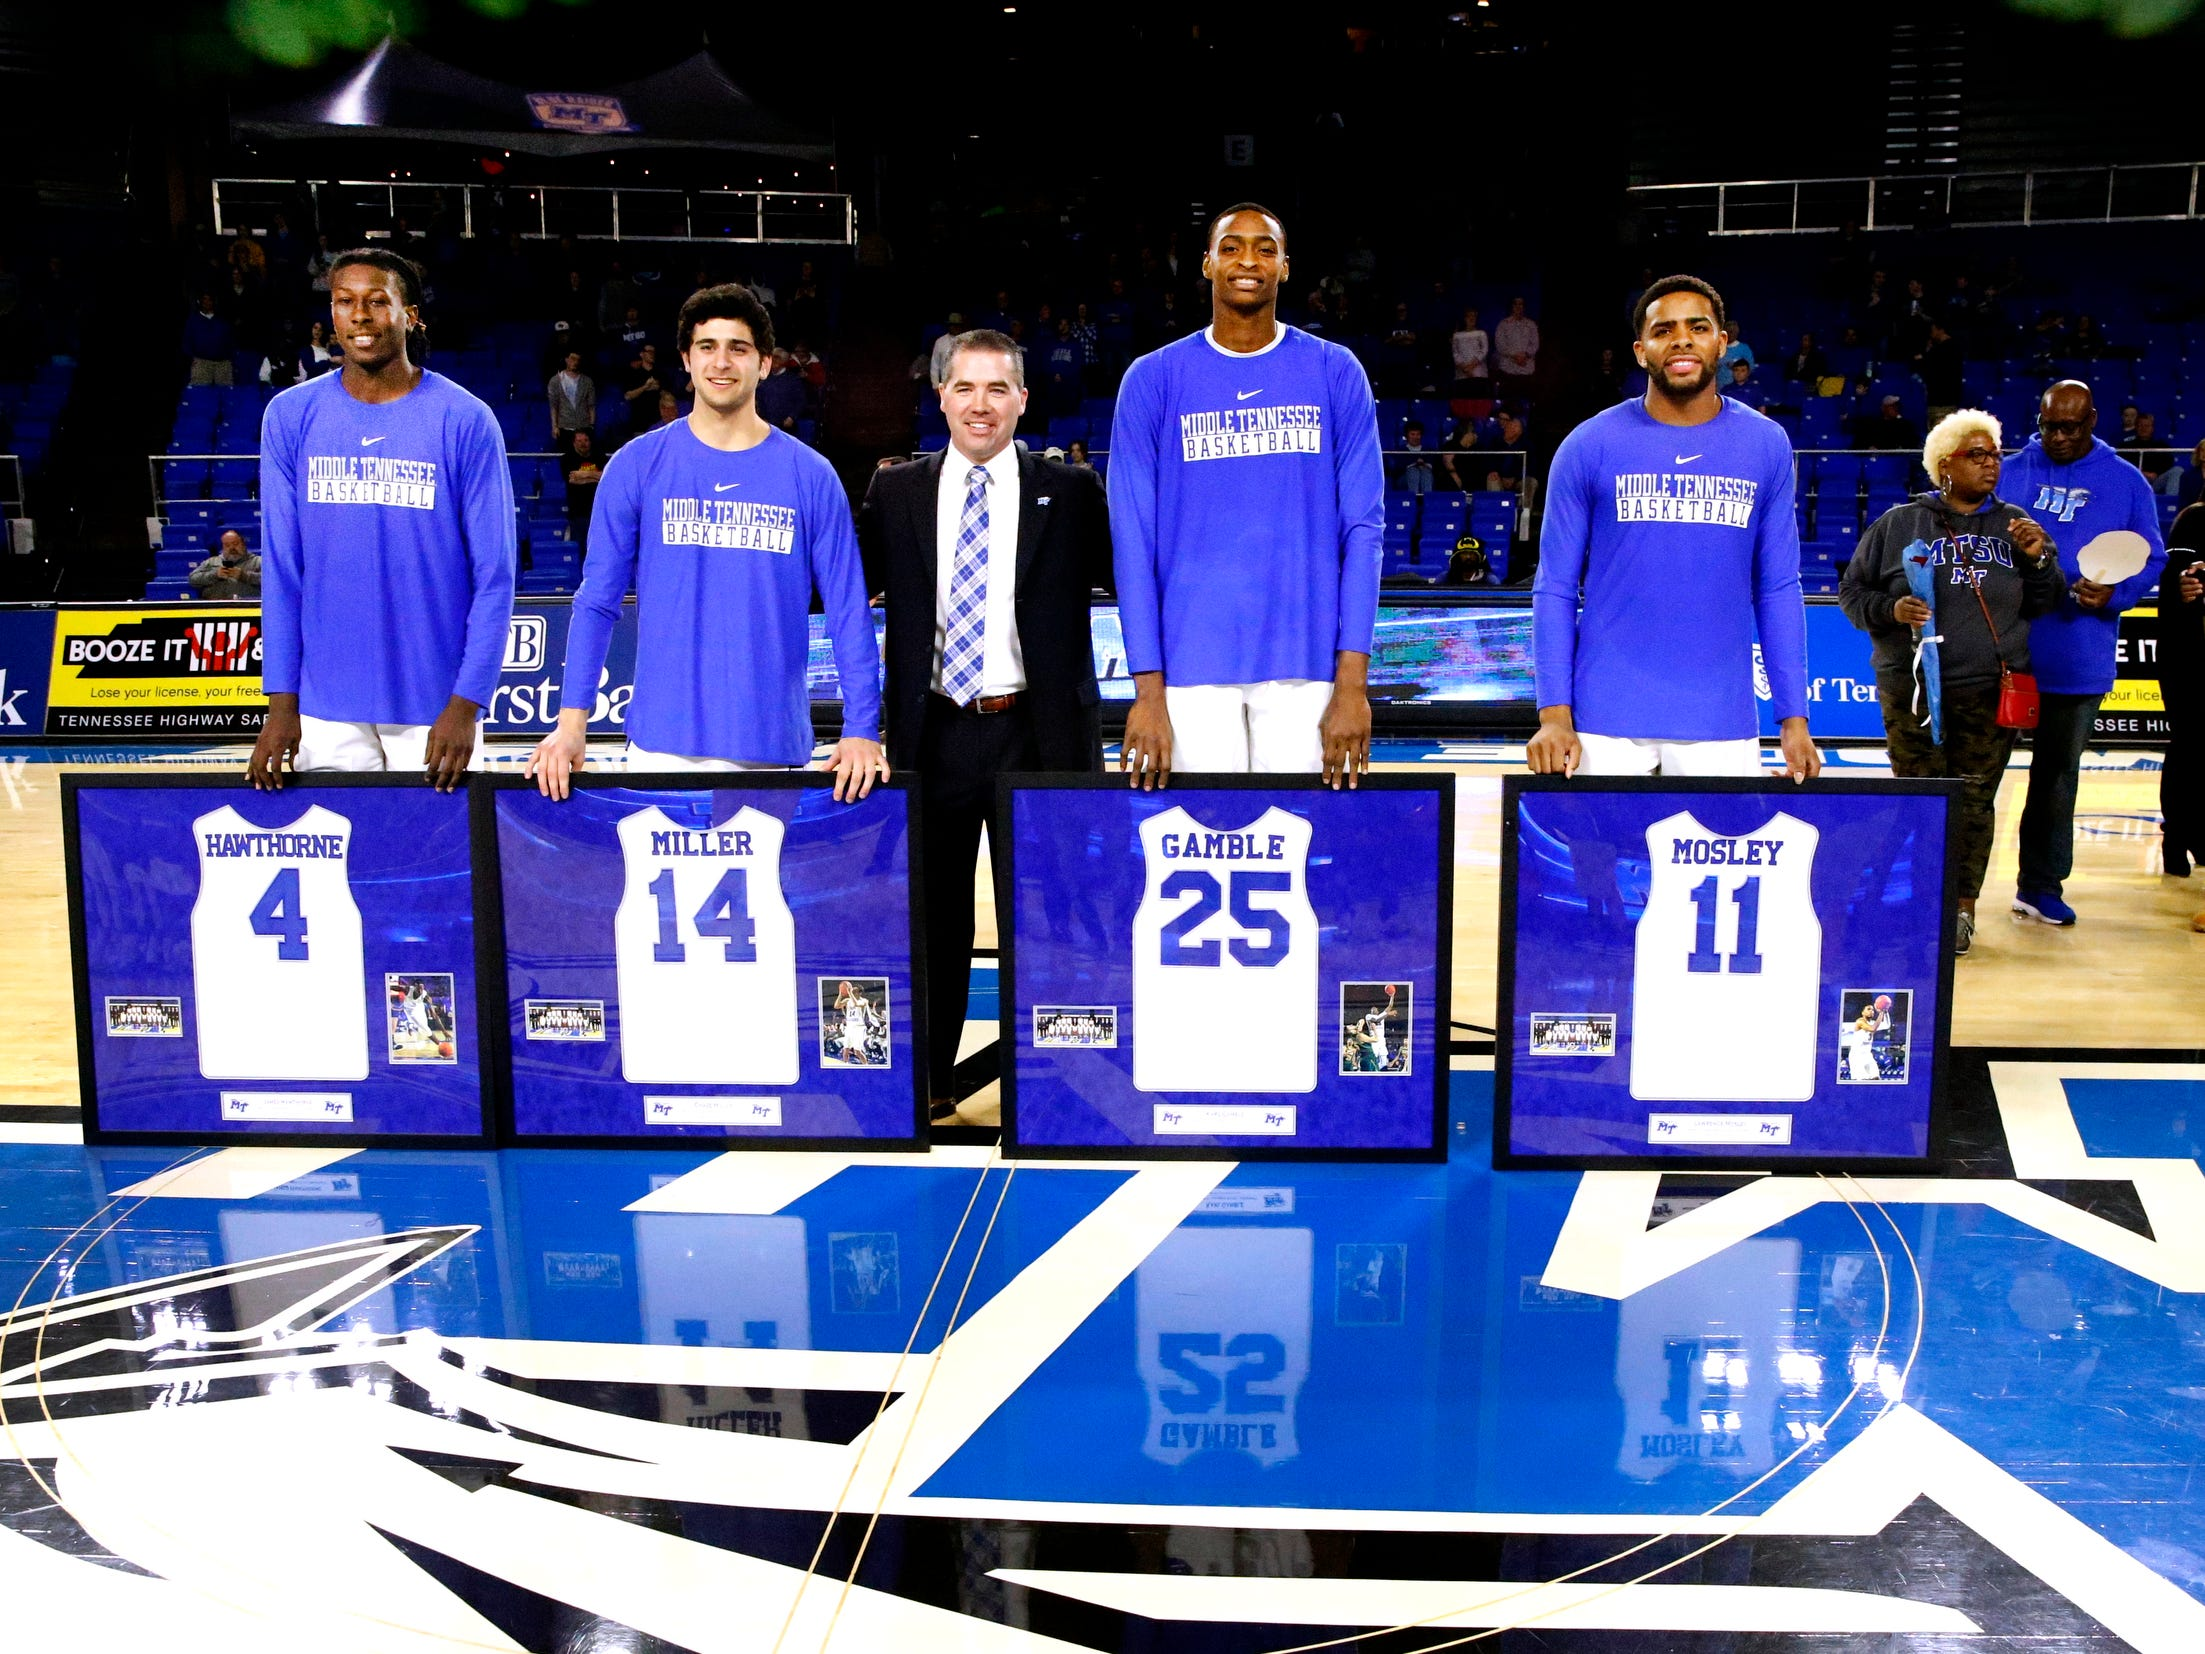 (L to R) MTSU senior forward James Hawthorne (4), MTSU senior guard Chase Miller (14), MTSU head coach Nick McDevitt, MTSU senior forward Karl Gamble (25) and MTSU senior guard Lawrence Mosley (11) all stand on the center of the court as MTSU seniors were honored before the game against UTEP on Saturday, March 9, 2019, at Murphy Center in Murfreesboro, Tenn.